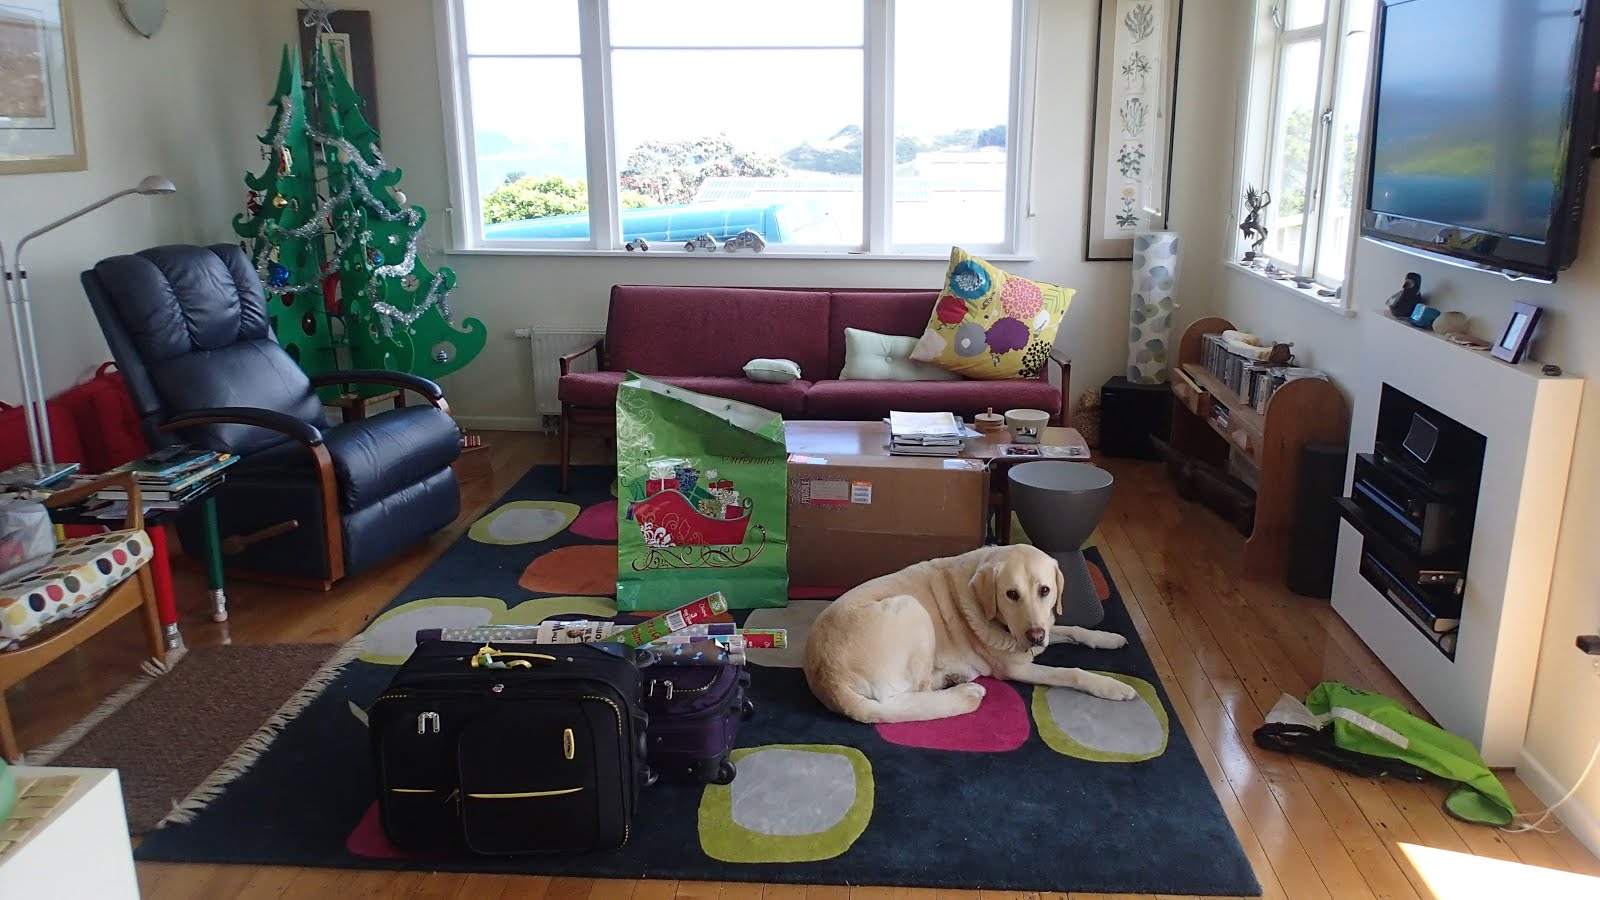 The South Island branch came up for Christmas, with retired guide dog Vincent